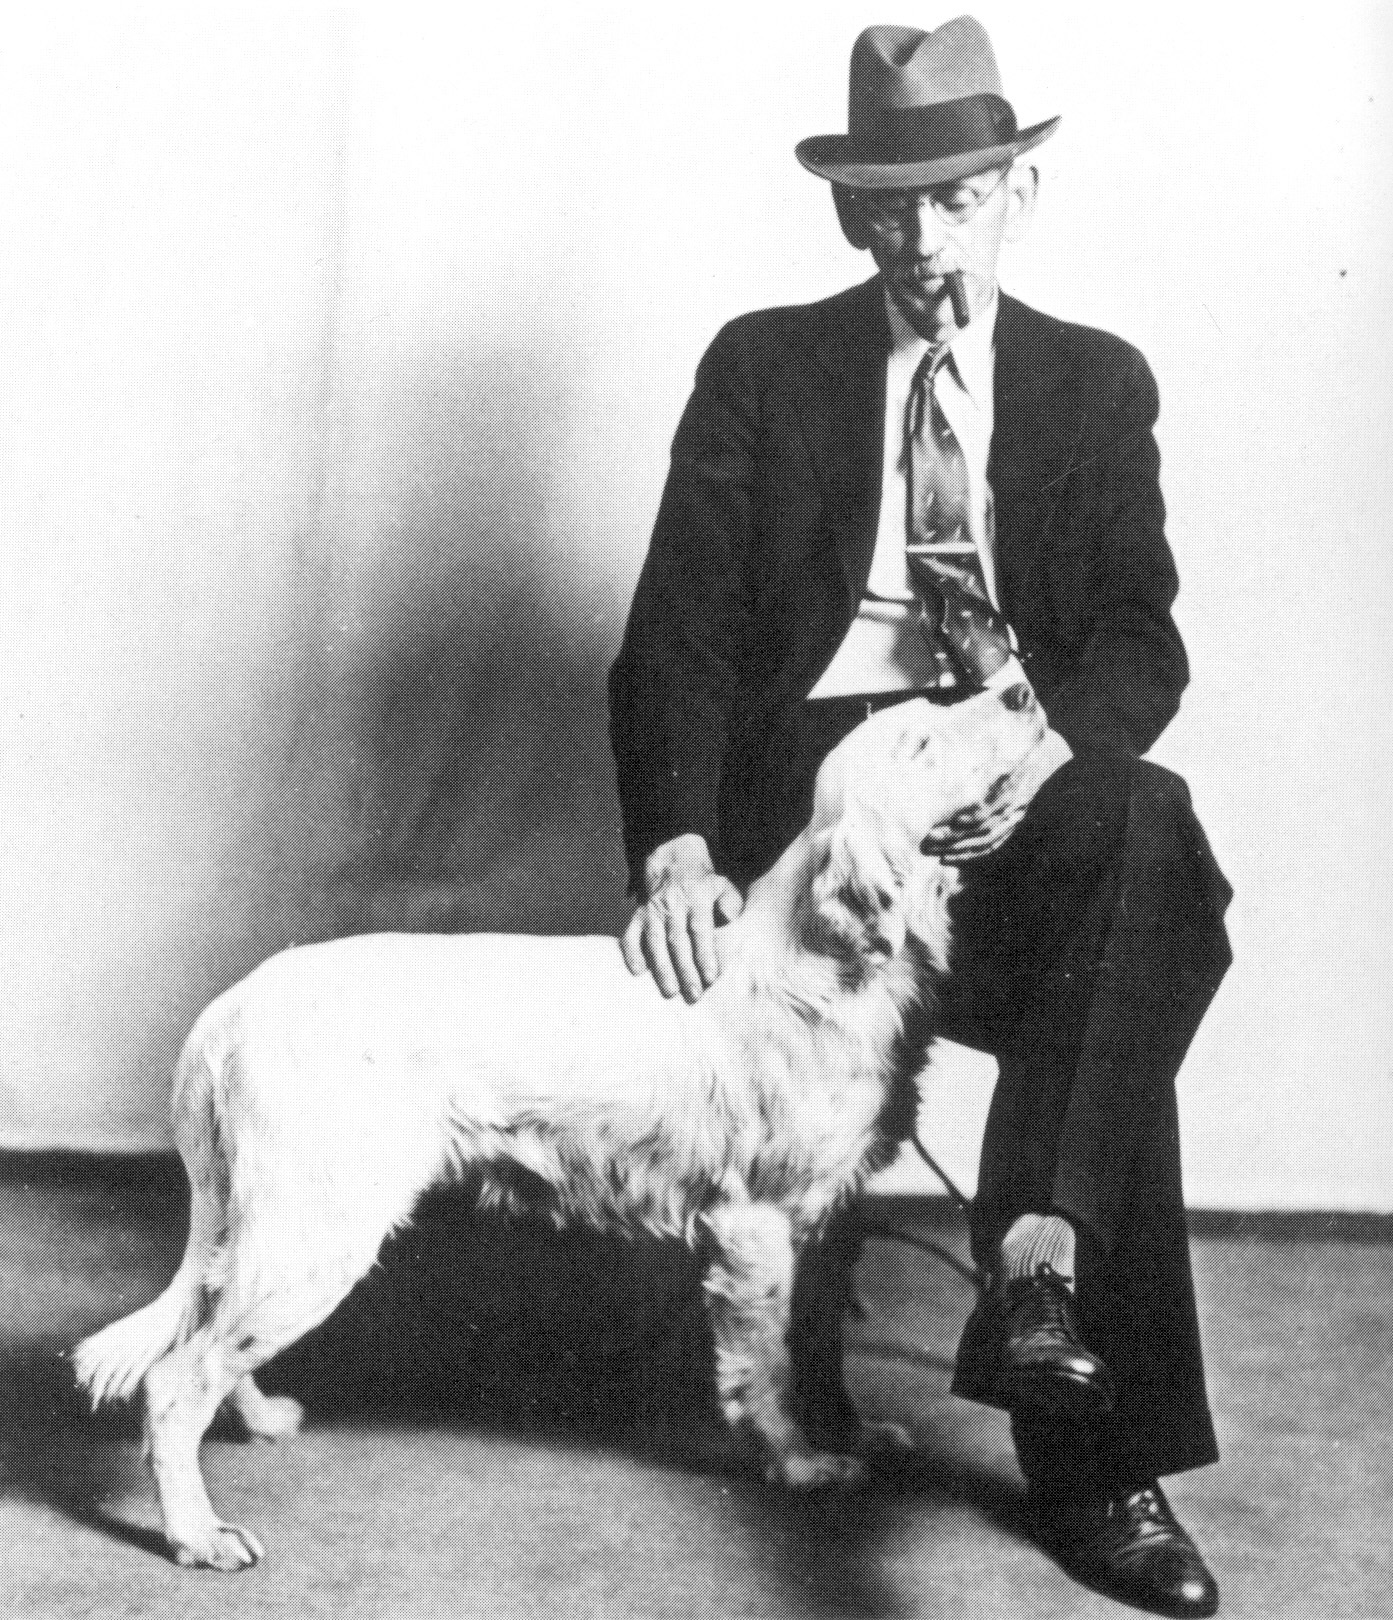 Dr William Whittenberg petting his dog